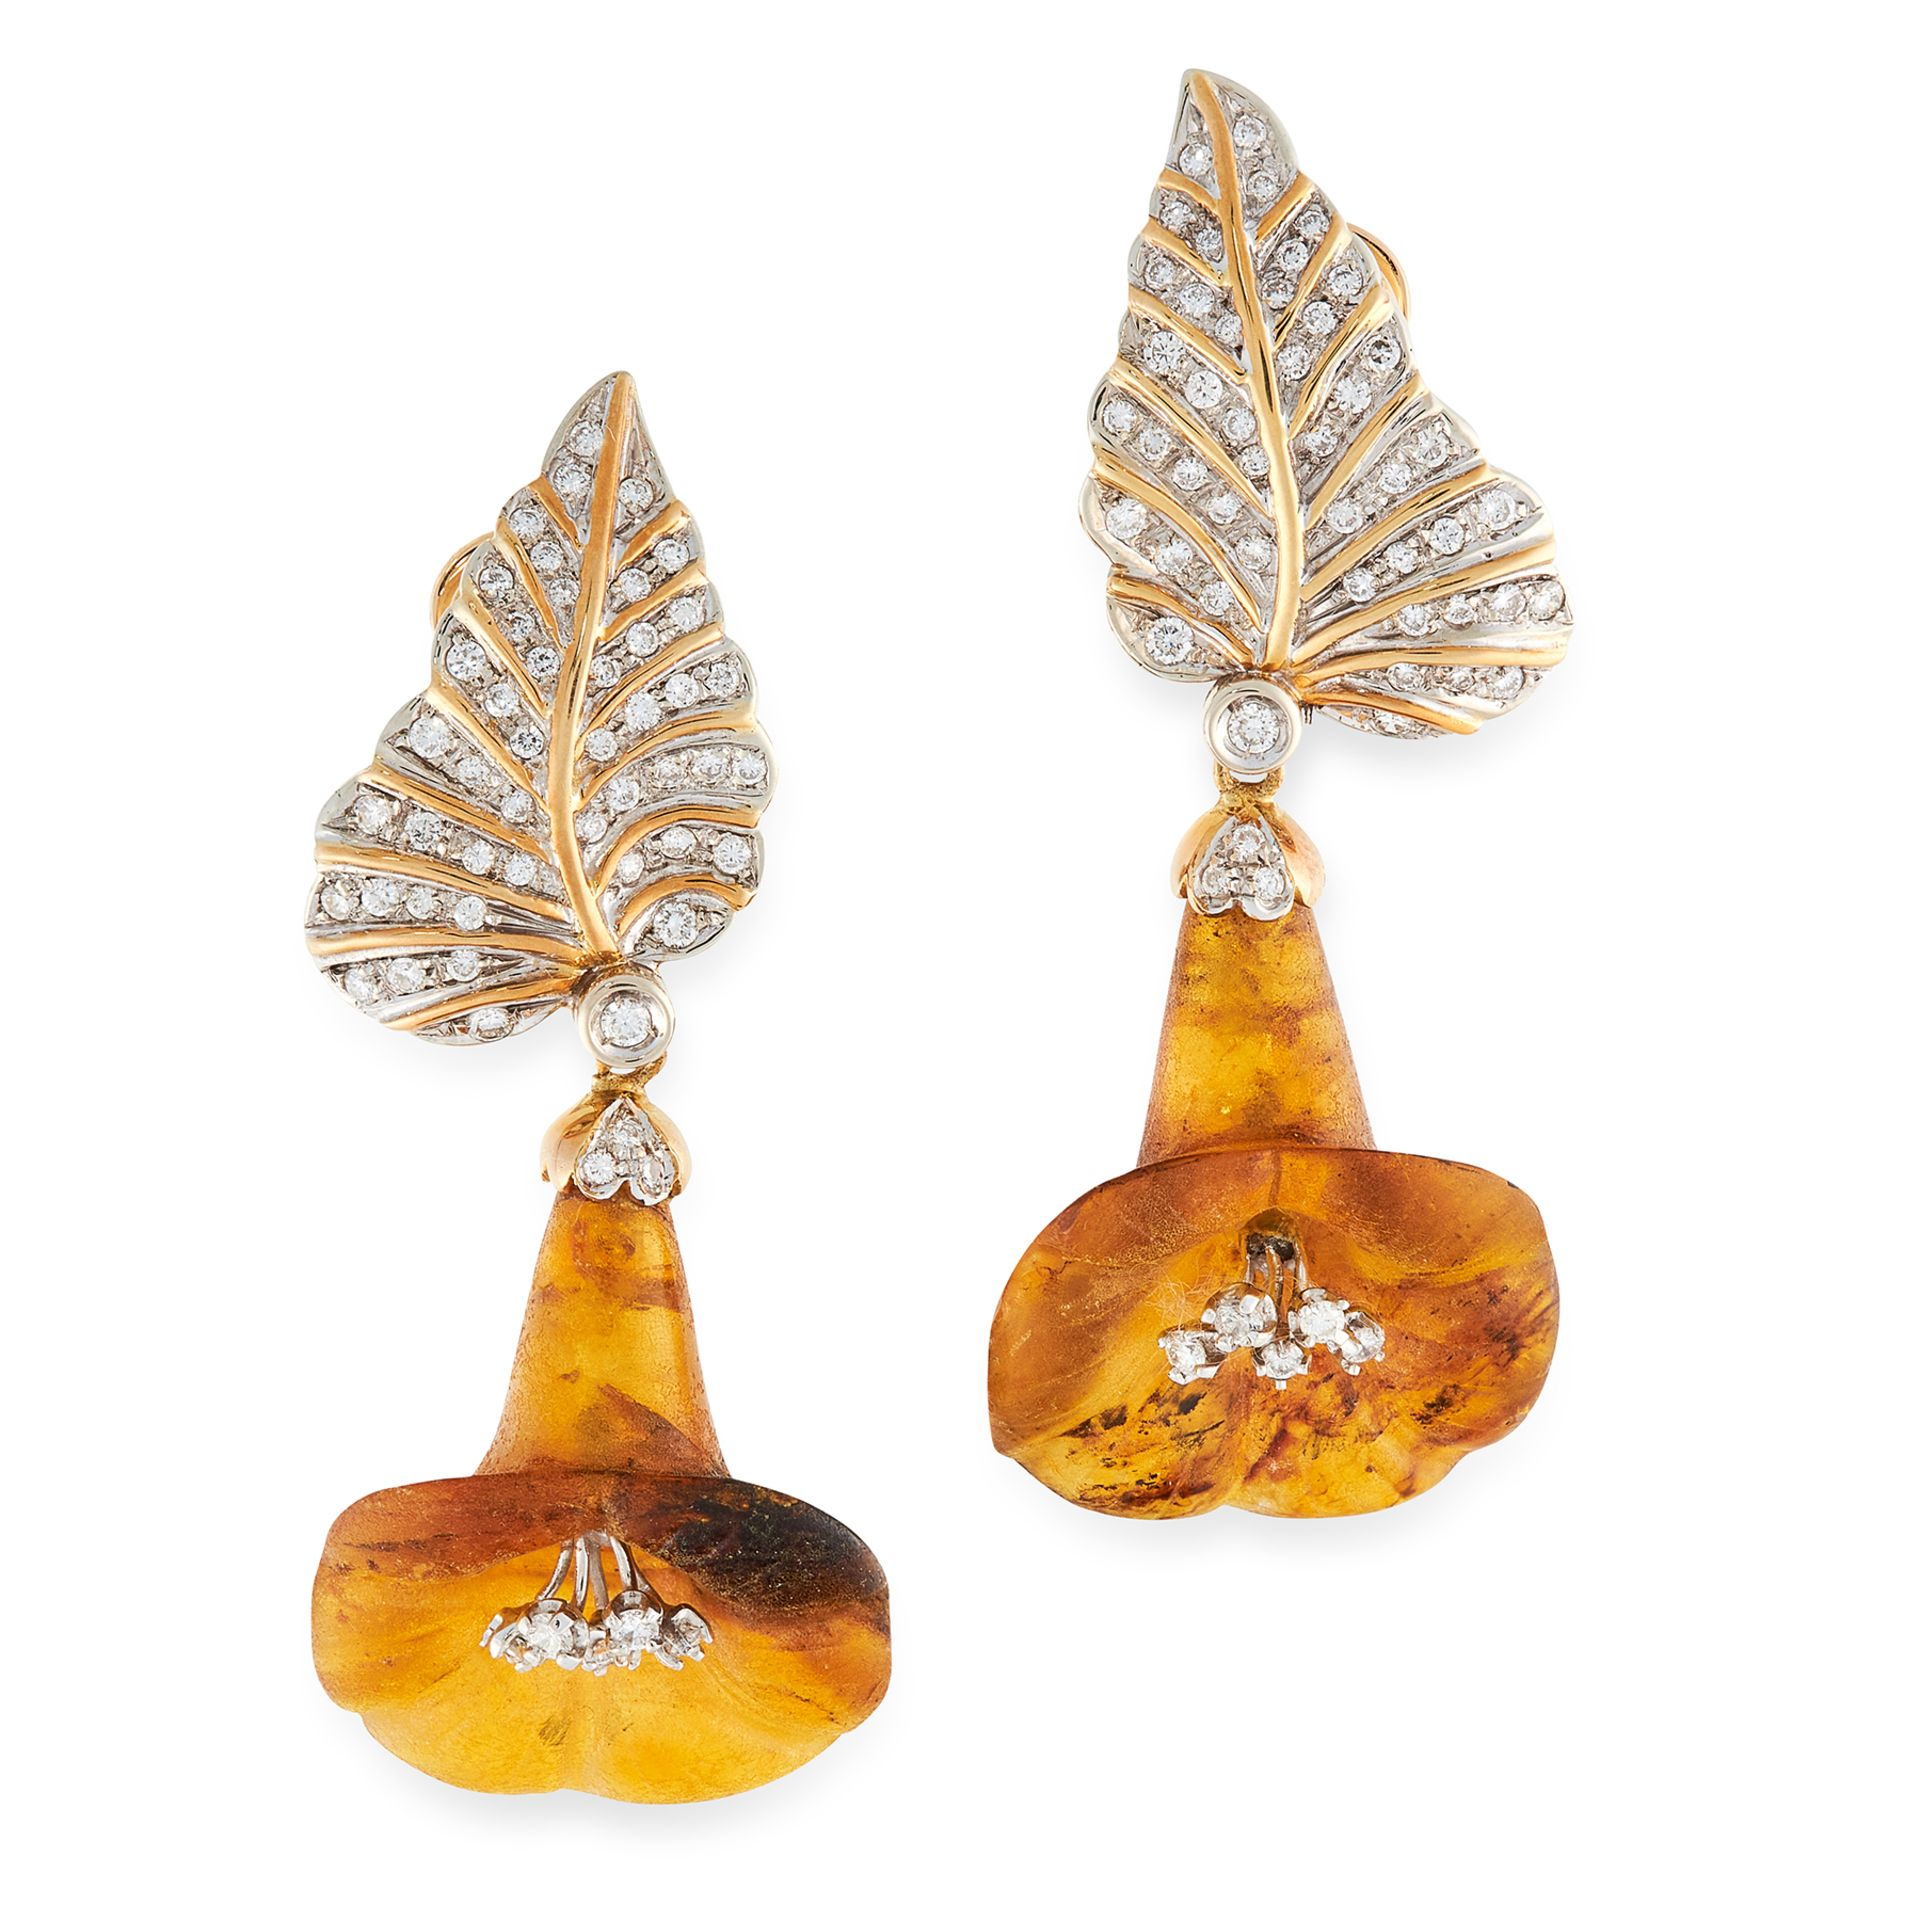 A PAIR OF DIAMOND AND AMBER FLOWER EARRINGS in yellow gold, in the form of a leaf set with round cut